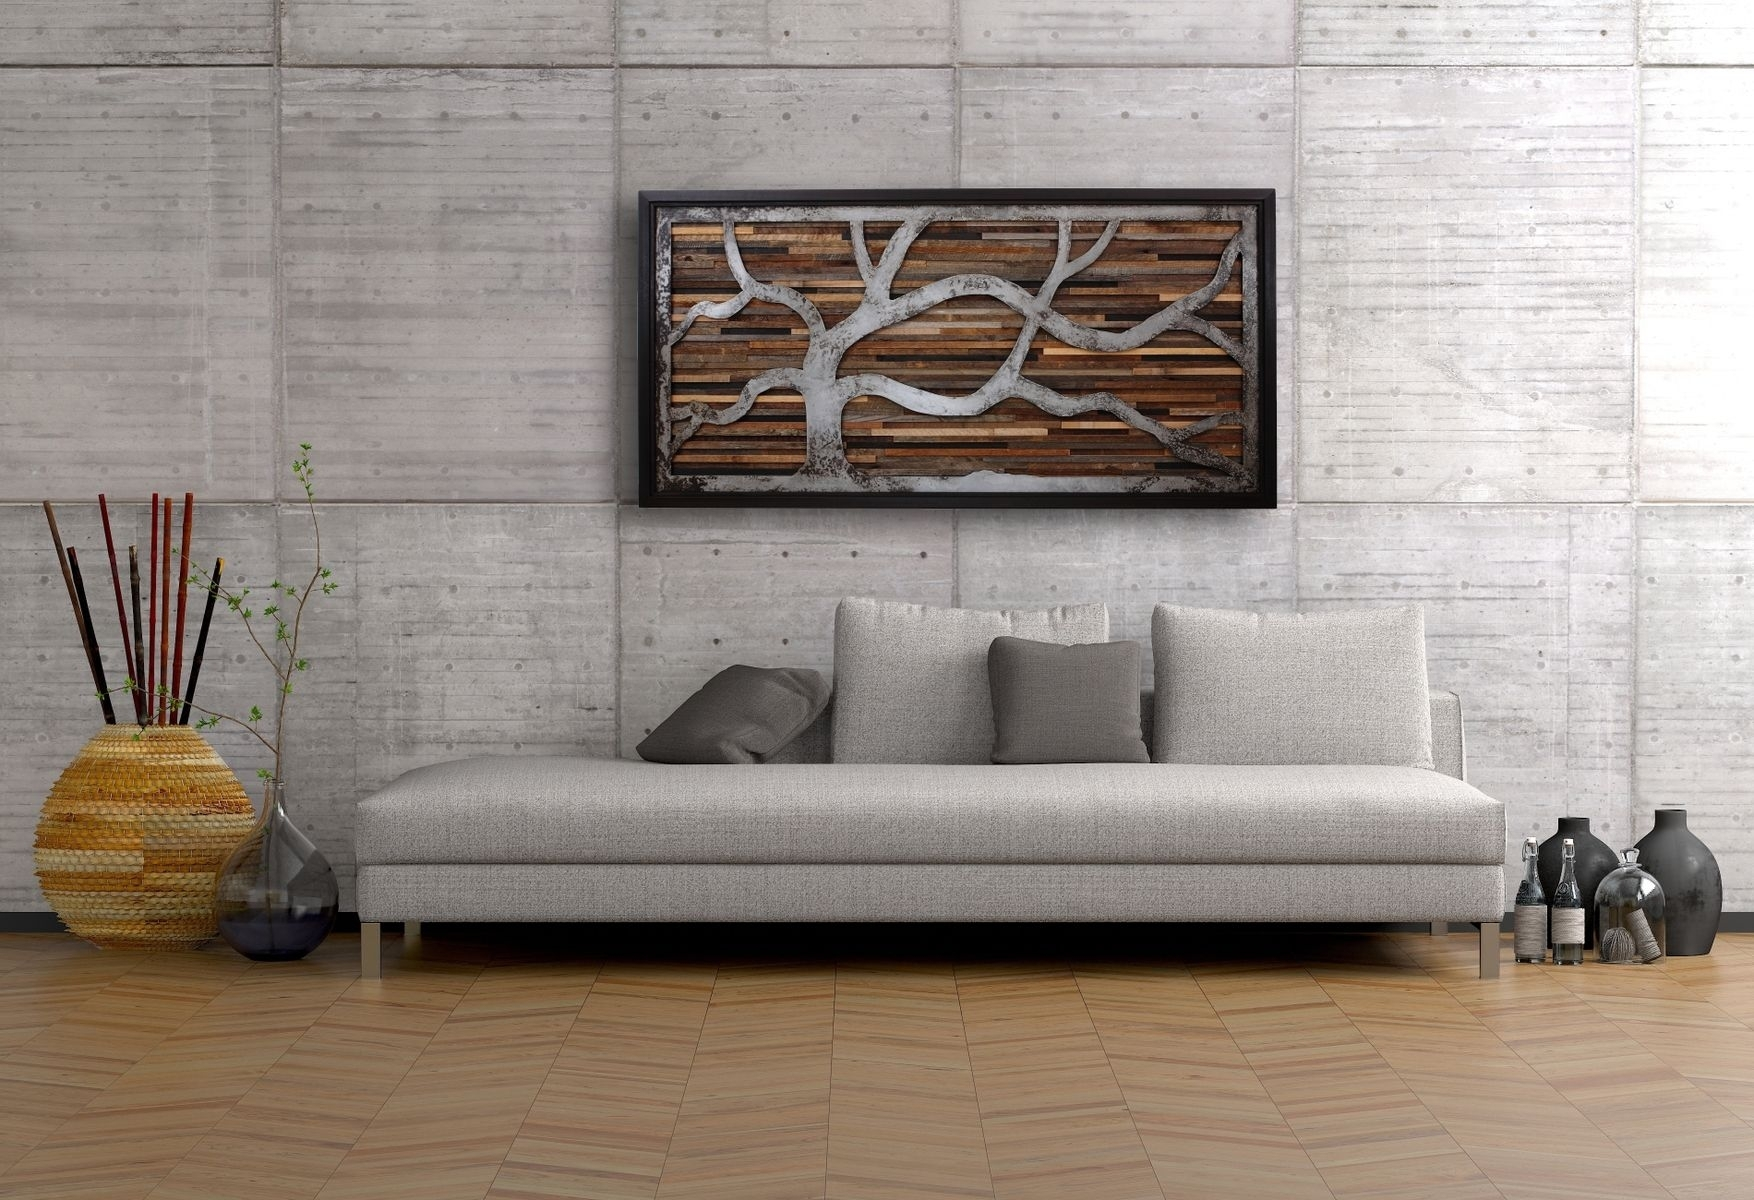 Handmade Reclaimed Wood Wall Art Made Of Old Barnwood And Rustic With Best And Newest Reclaimed Wood Wall Accents (Gallery 4 of 15)